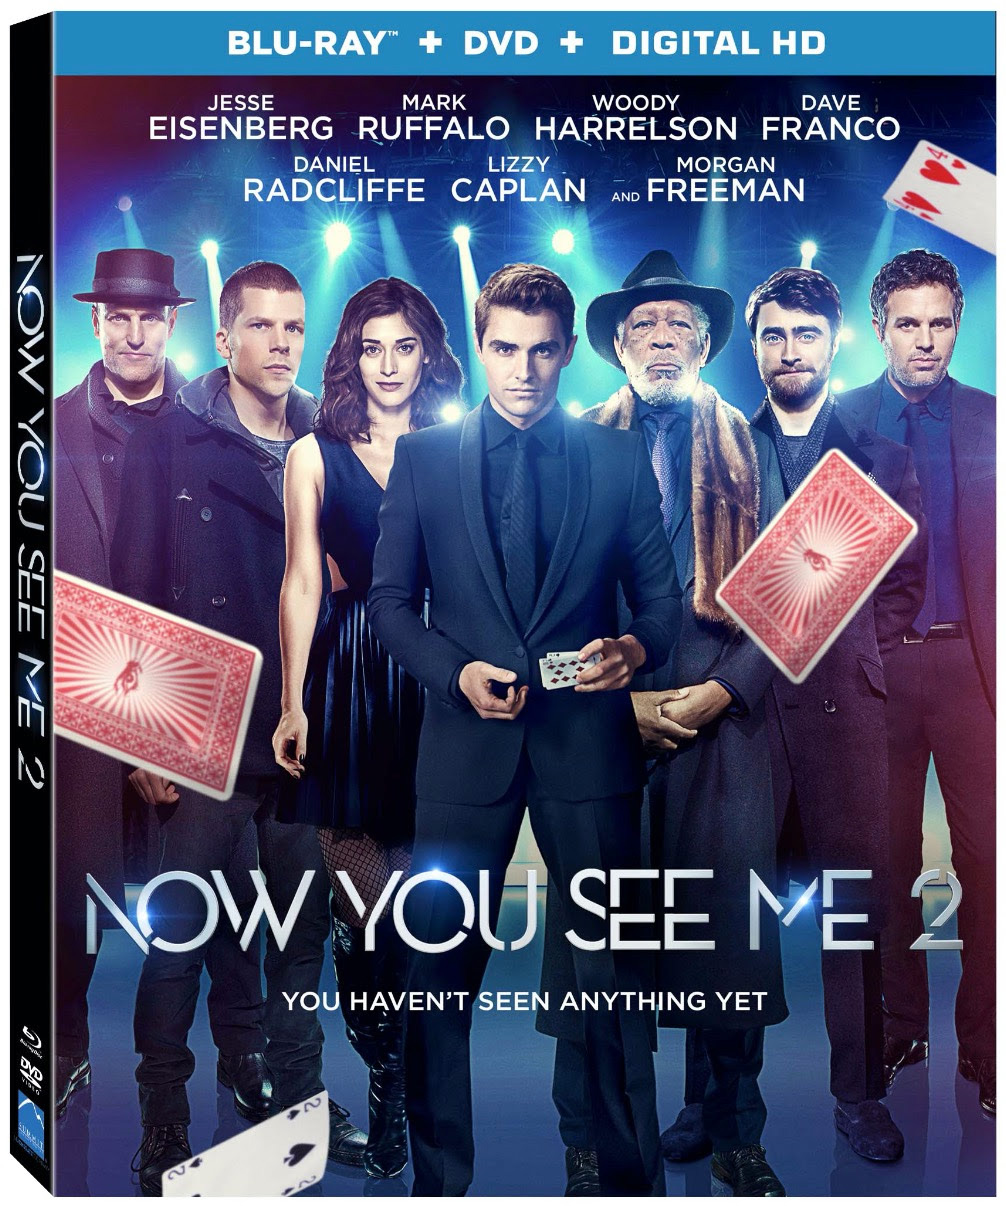 Warriors Vs Knights Live Stream Free: Now You See Me 2 4K, Blu-ray, DVD And Digital HD Release